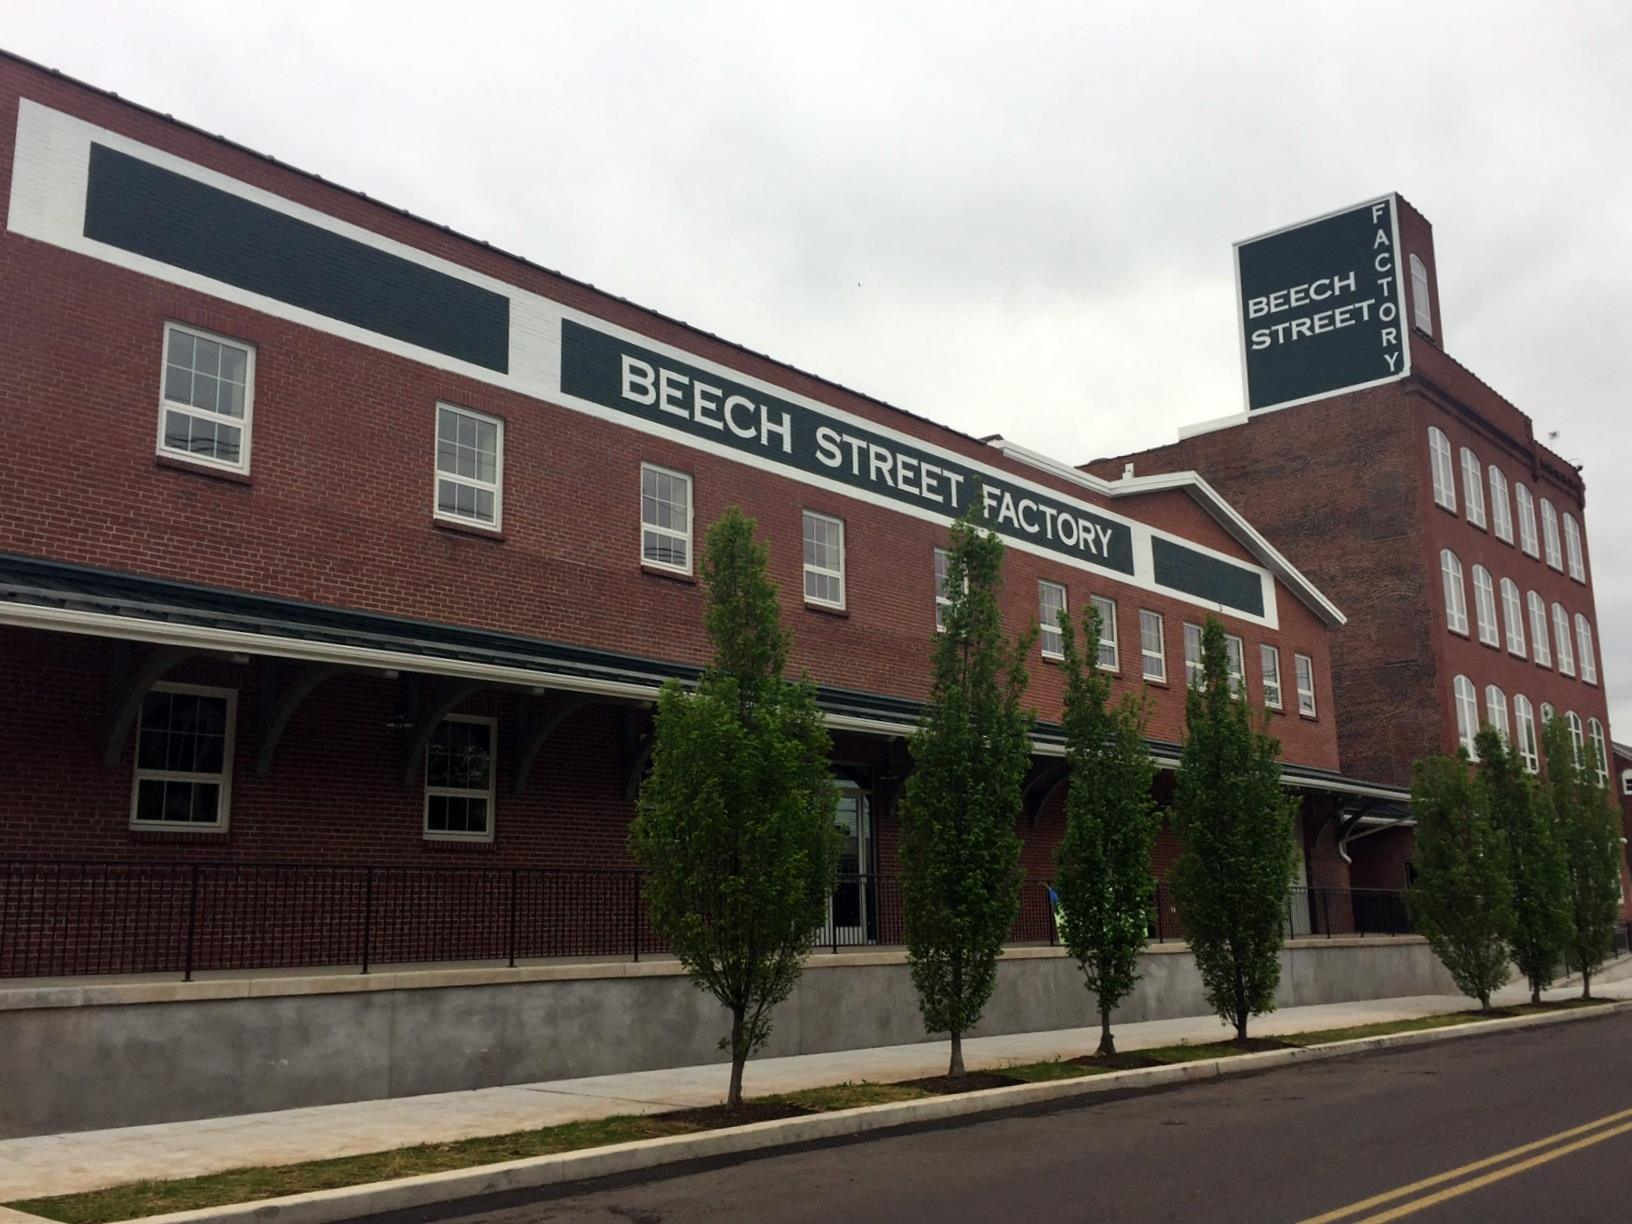 Image of The Beech Street Factory